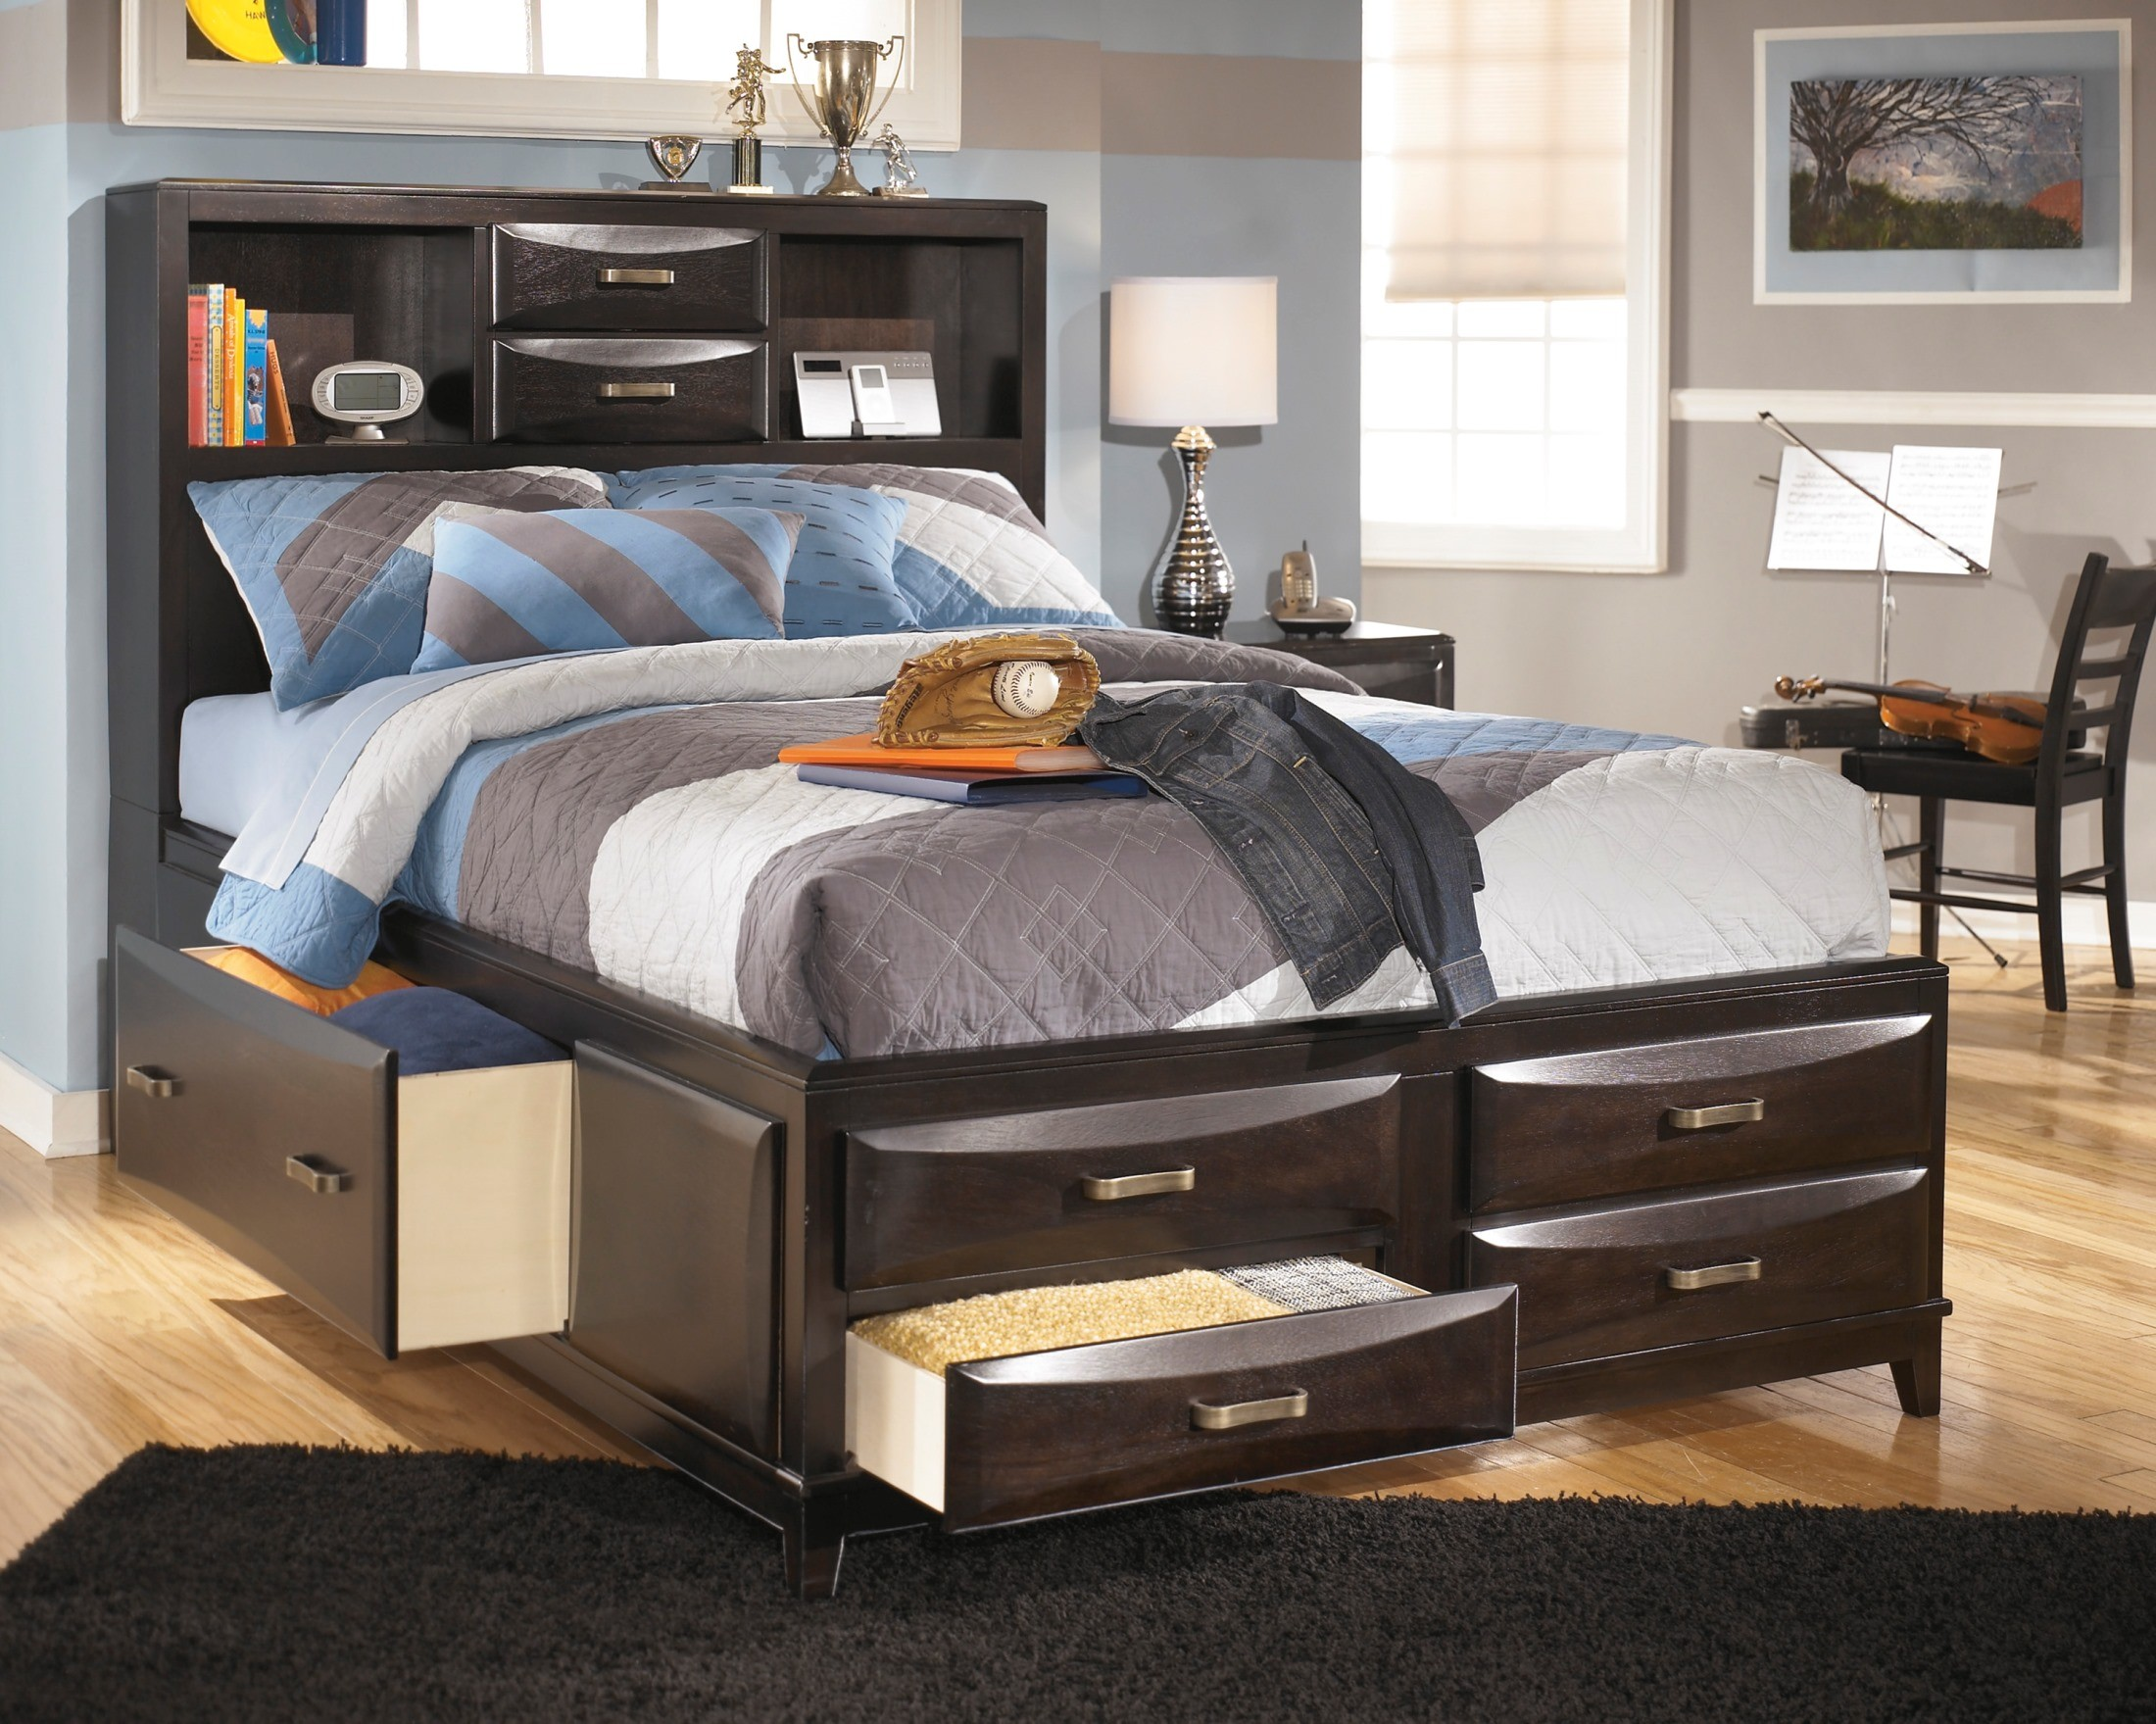 & Kira Full Storage Bed from Ashley (B473-77-74-88) | Coleman Furniture